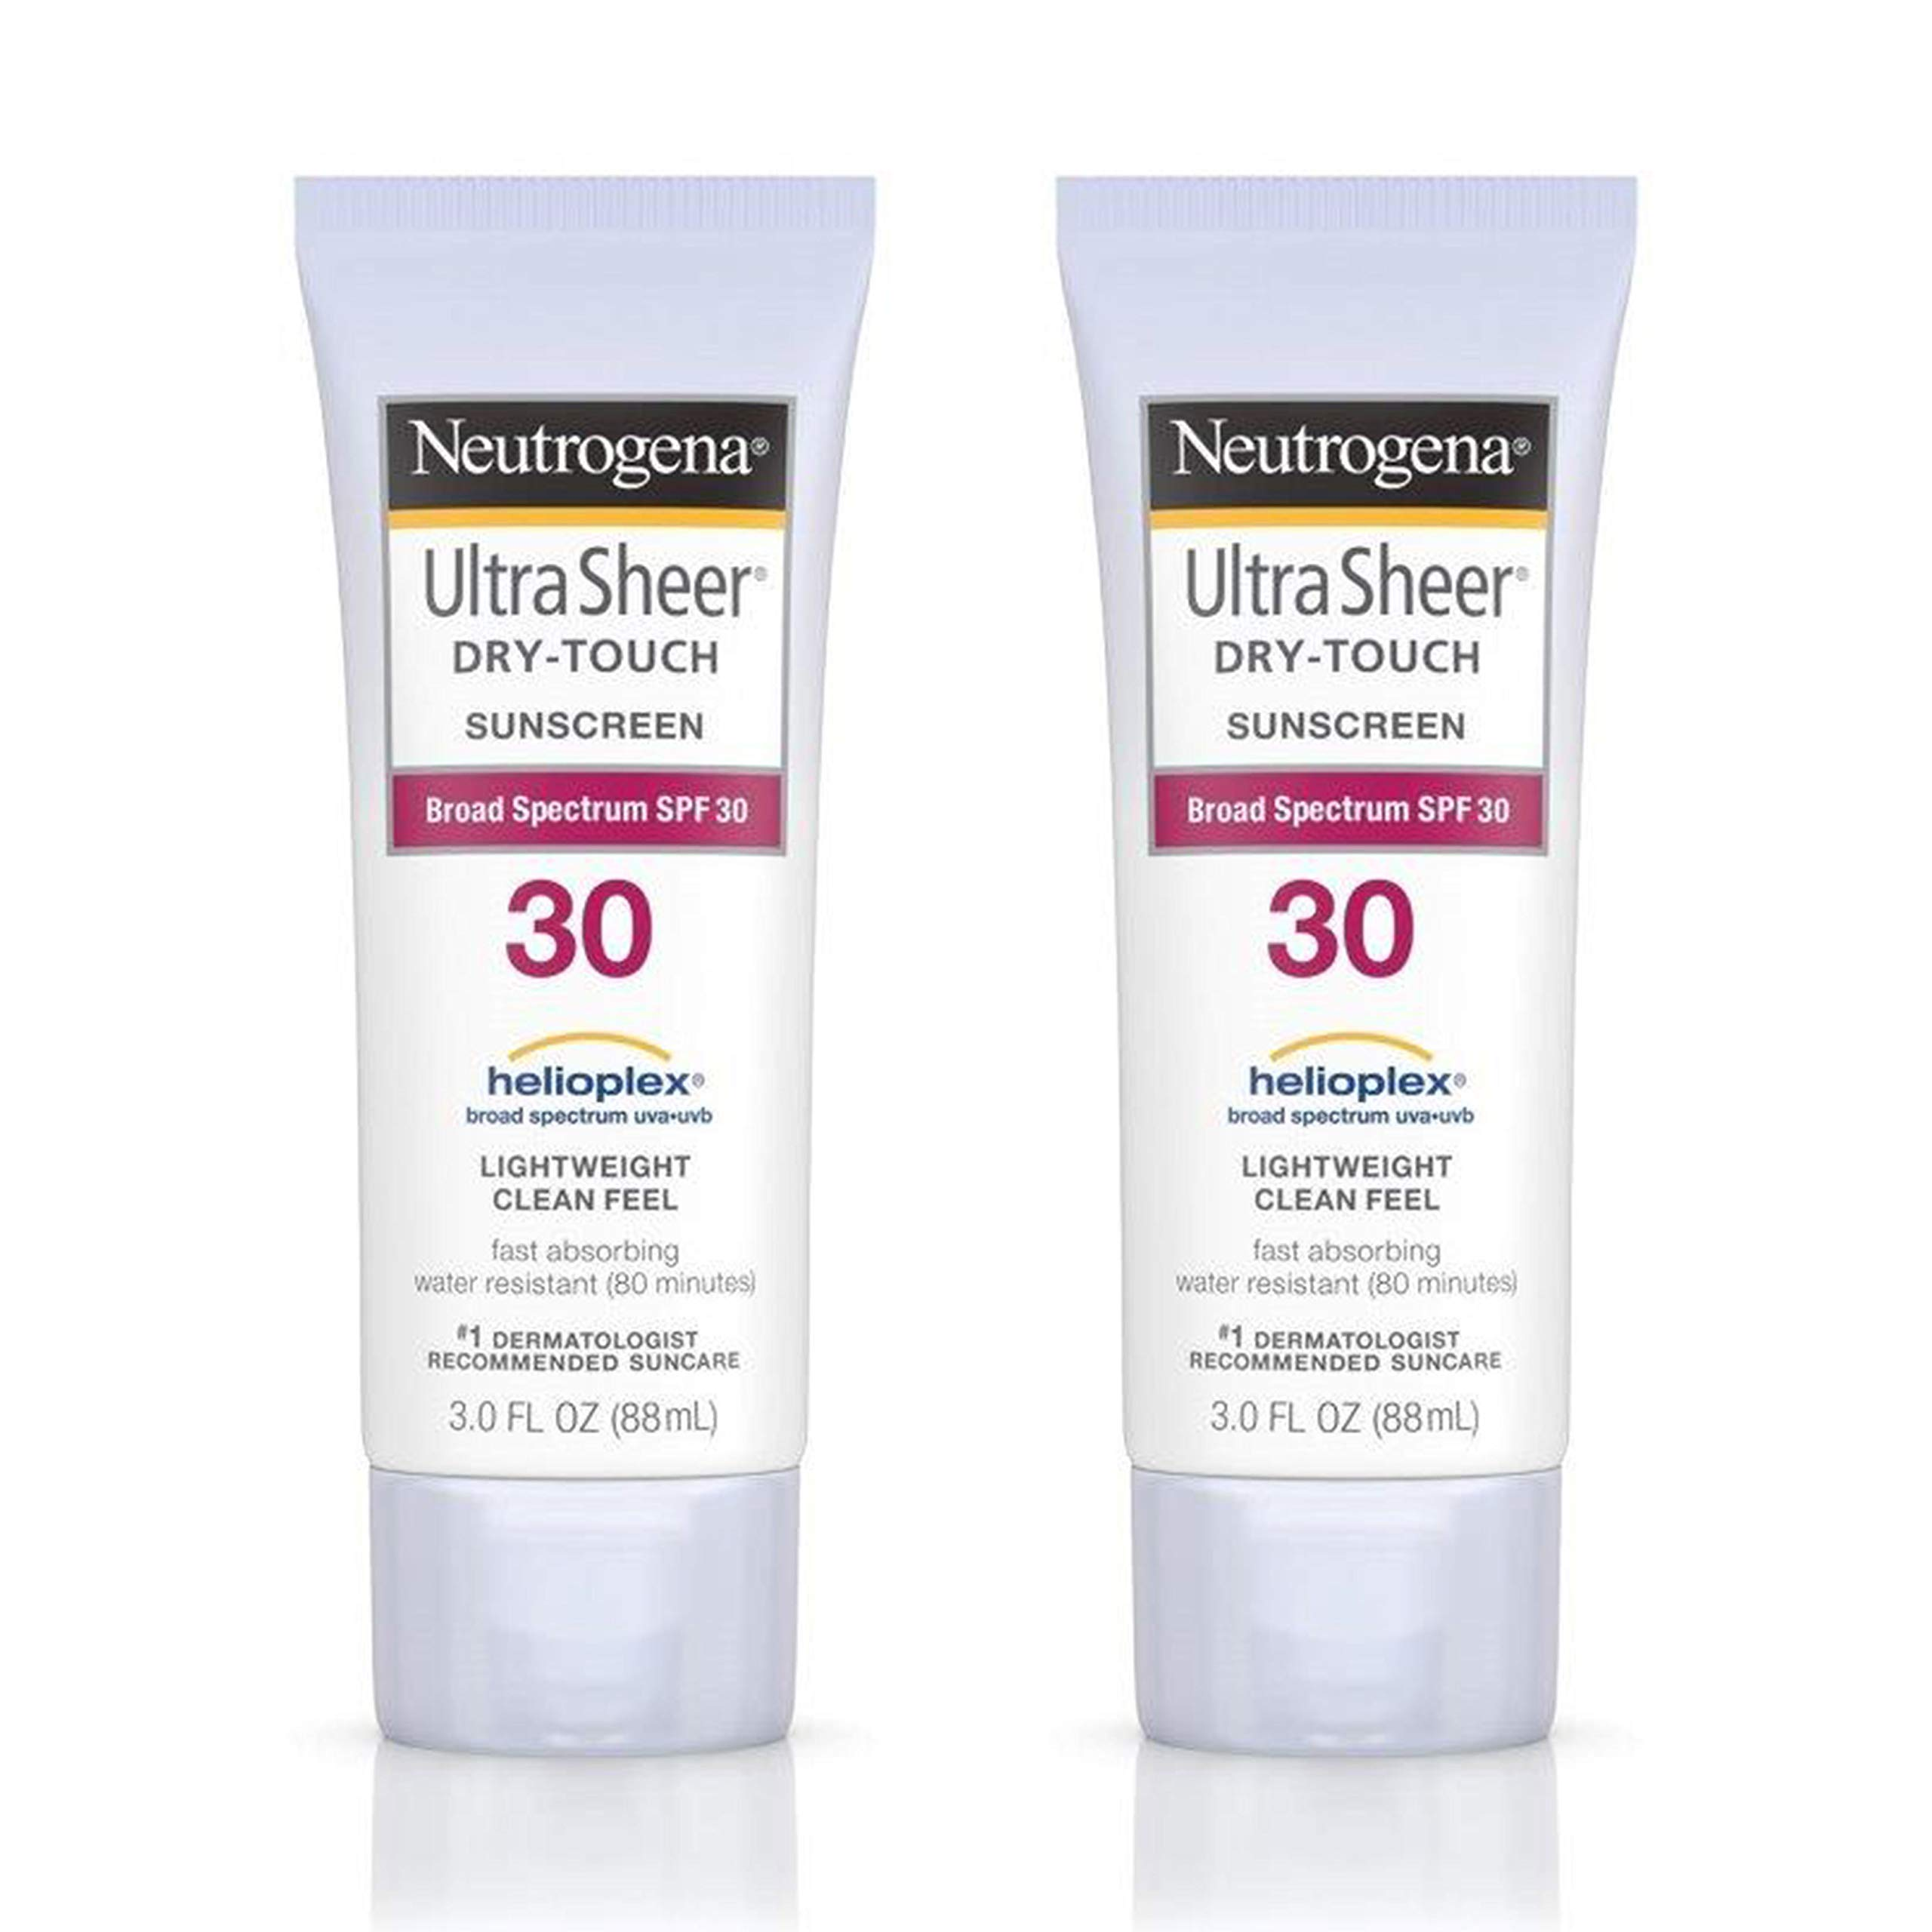 Neutrogena Ultra Sheer Dry-Touch Water Resistant and Non-Greasy Sunscreen Lotion with Broad Spectrum SPF 30, 3 fl. oz, Pack of 2 by Neutrogena